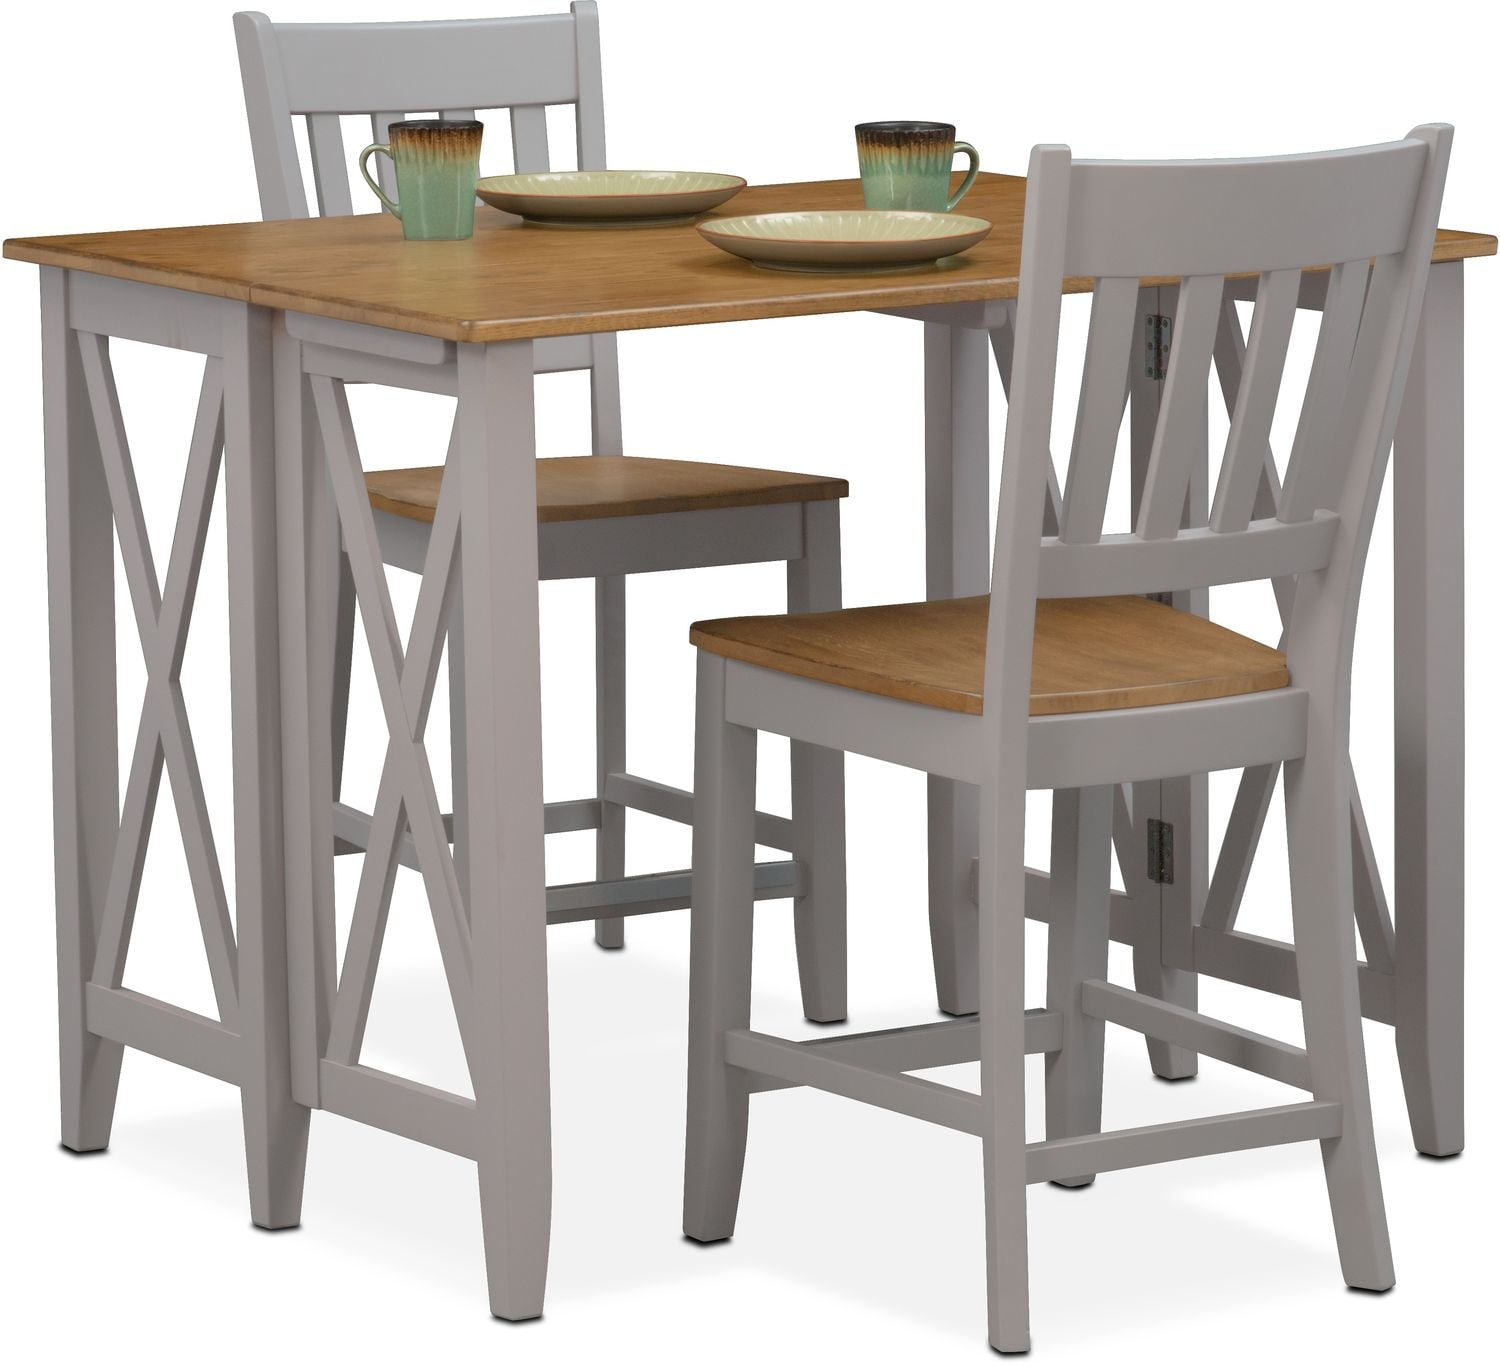 Breakfast Chairs Nantucket Breakfast Bar And 2 Counter Height Slat Back Chairs Oak And Gray